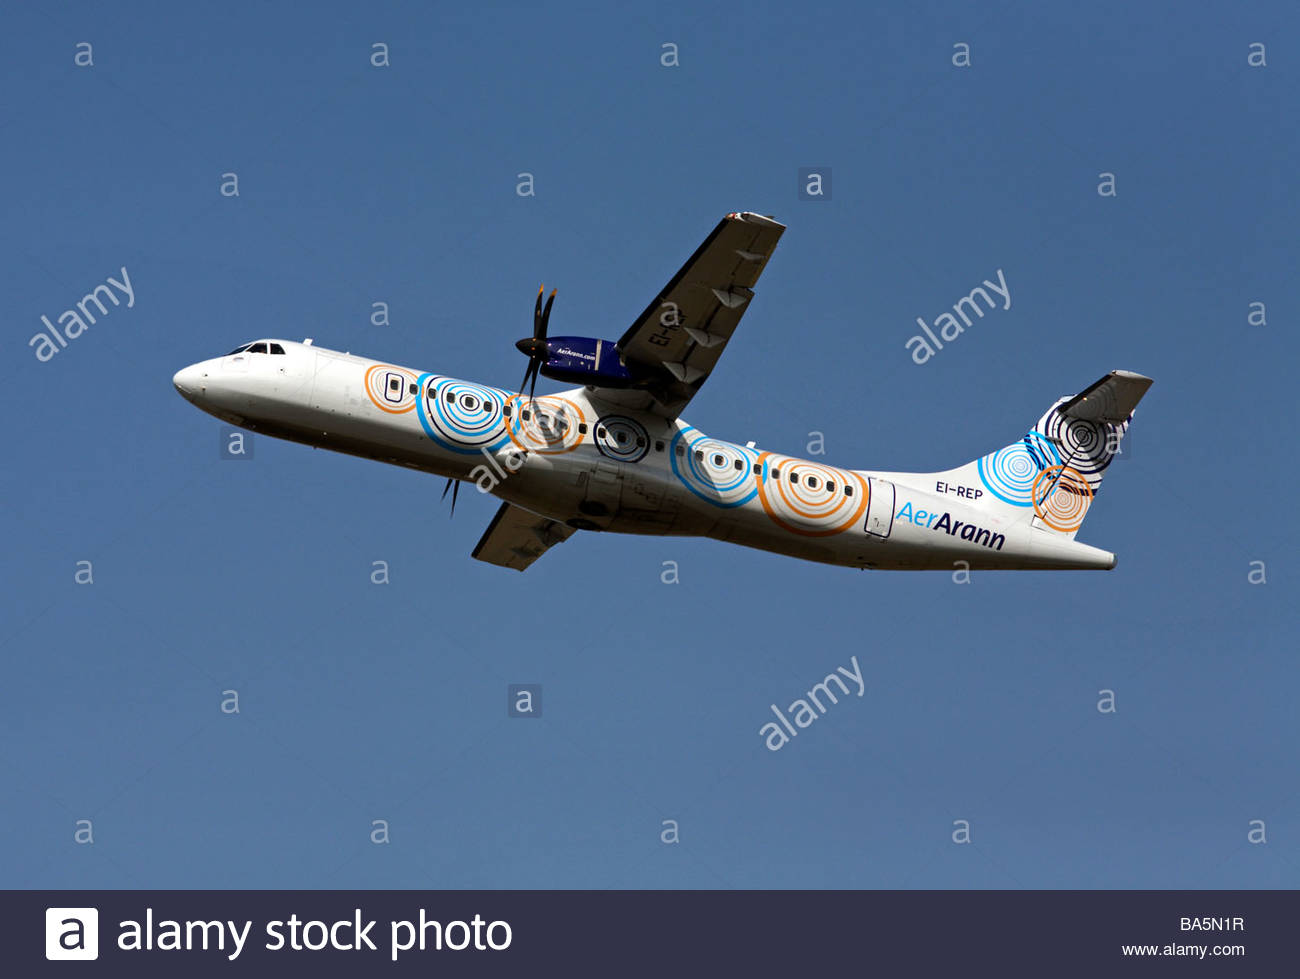 Aer Arann flight shortly after takeoff - Stock Image